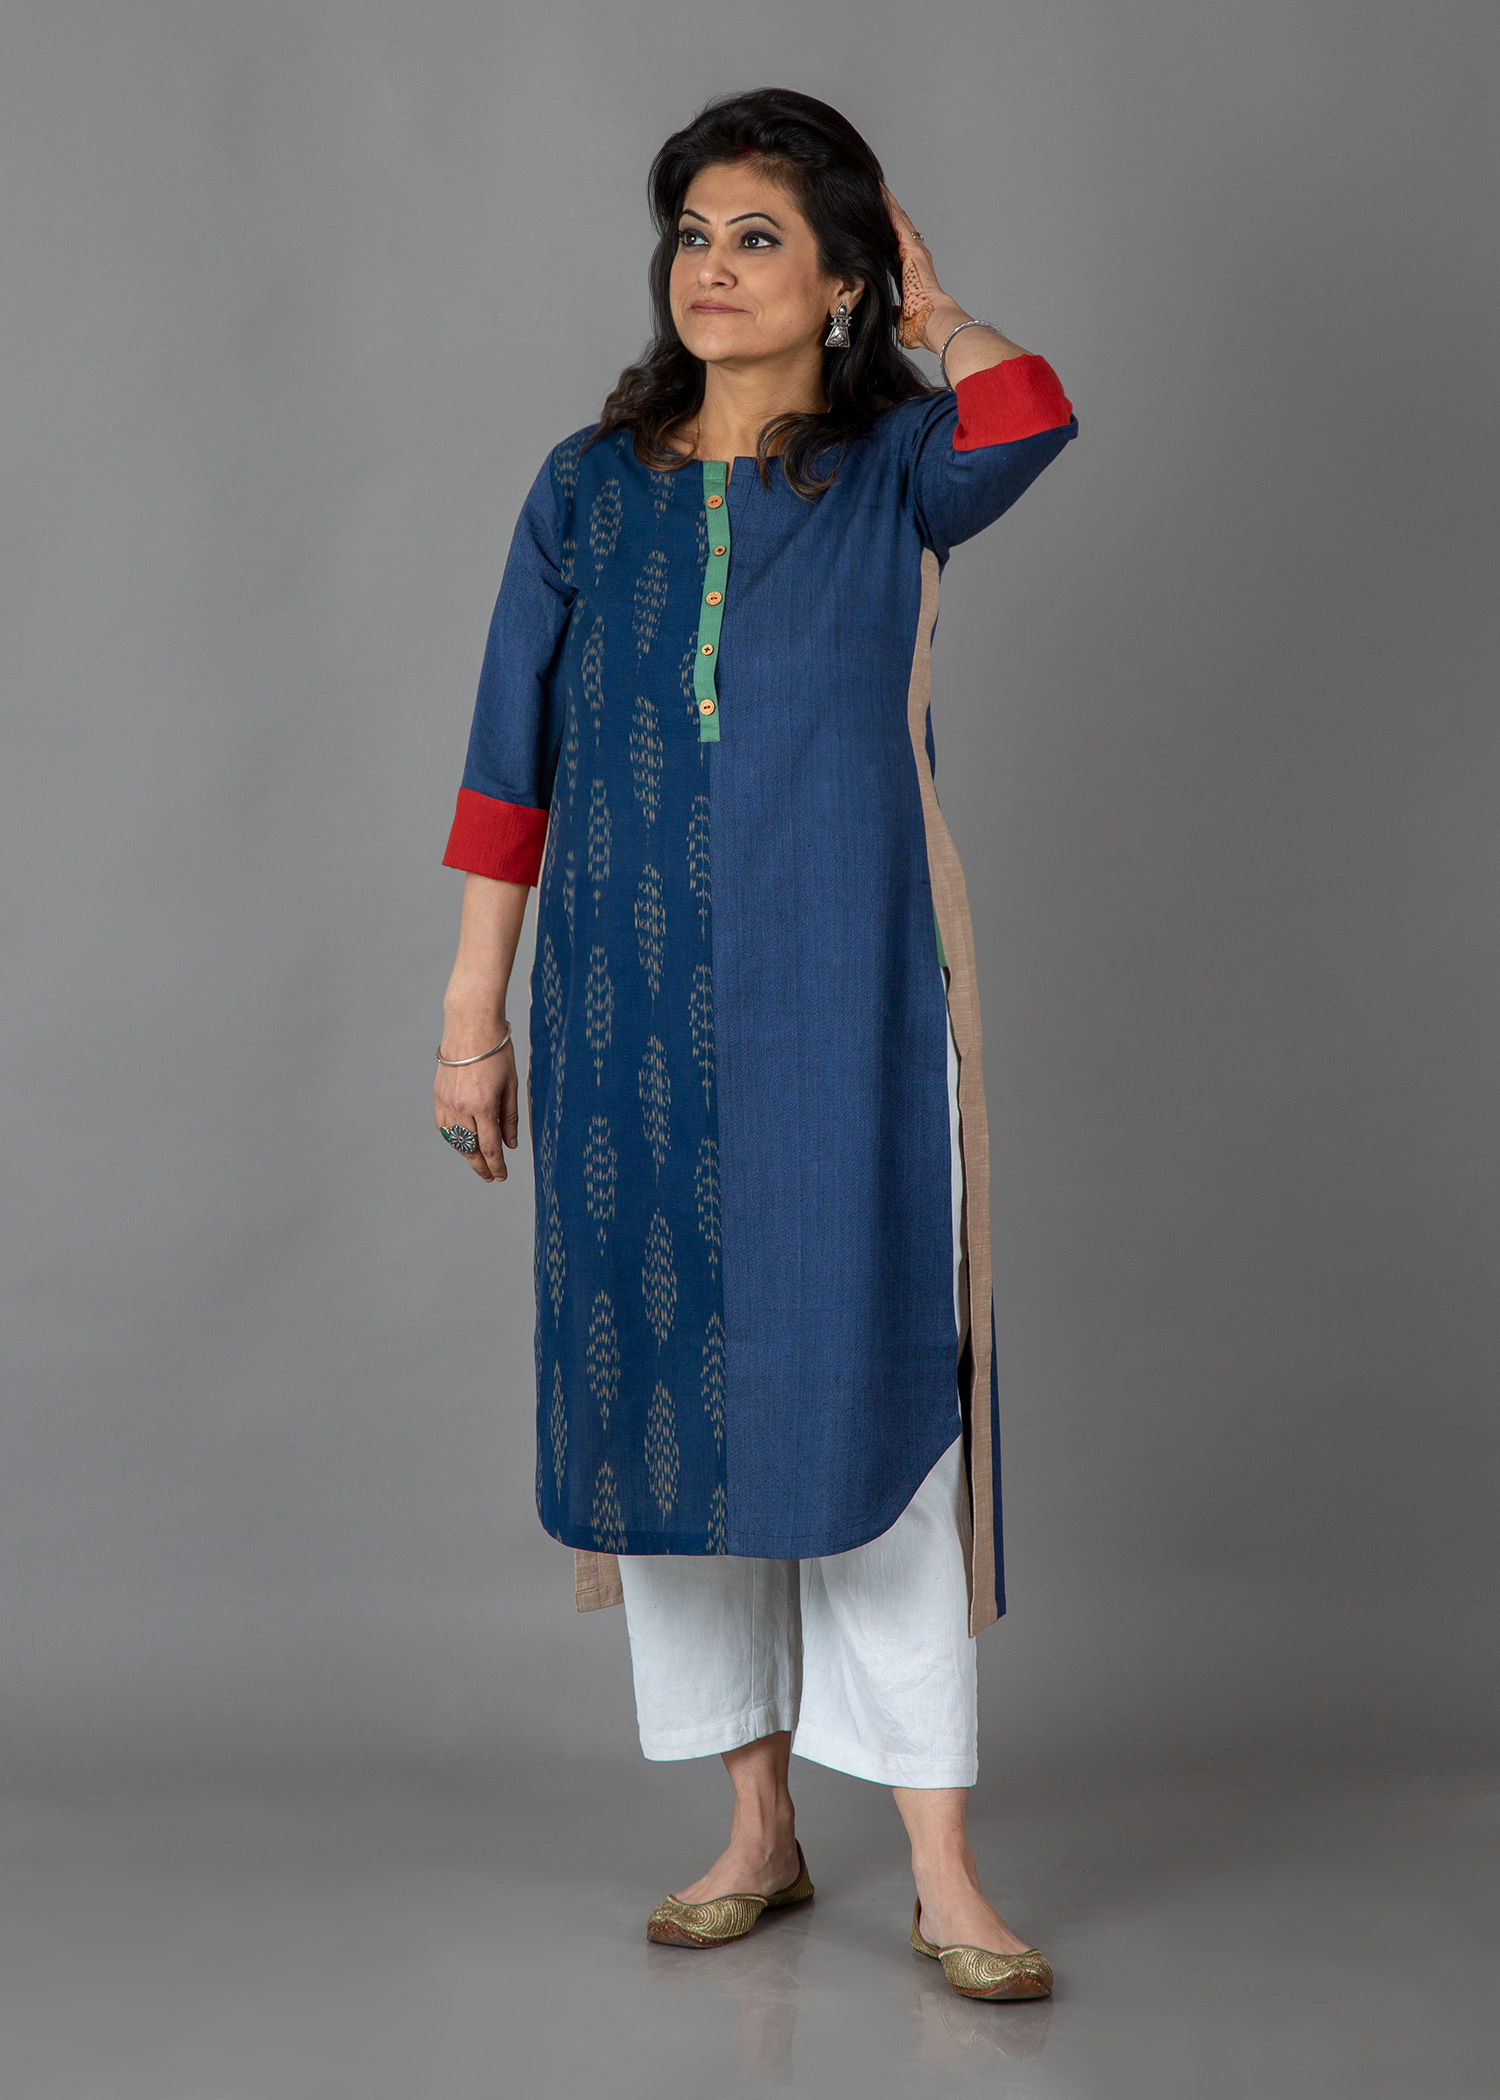 Ink Blue Handwoven Cotton & Ikat Kurta